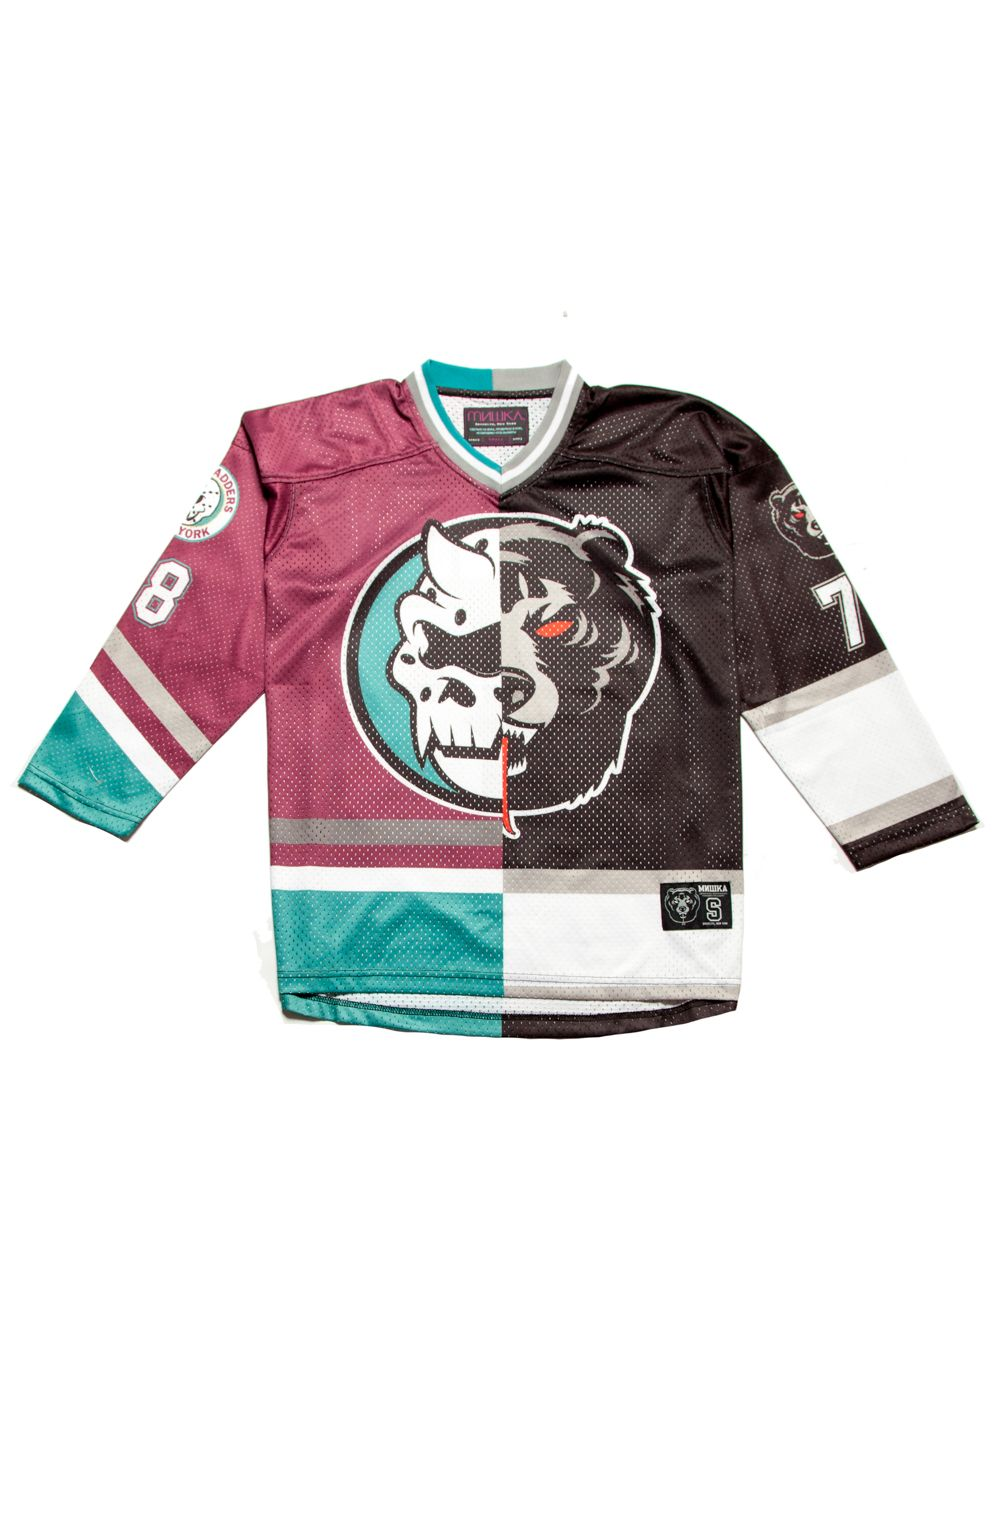 42.50 - Split Icons Hockey Jersey (Burgundy Black)  25f50da90